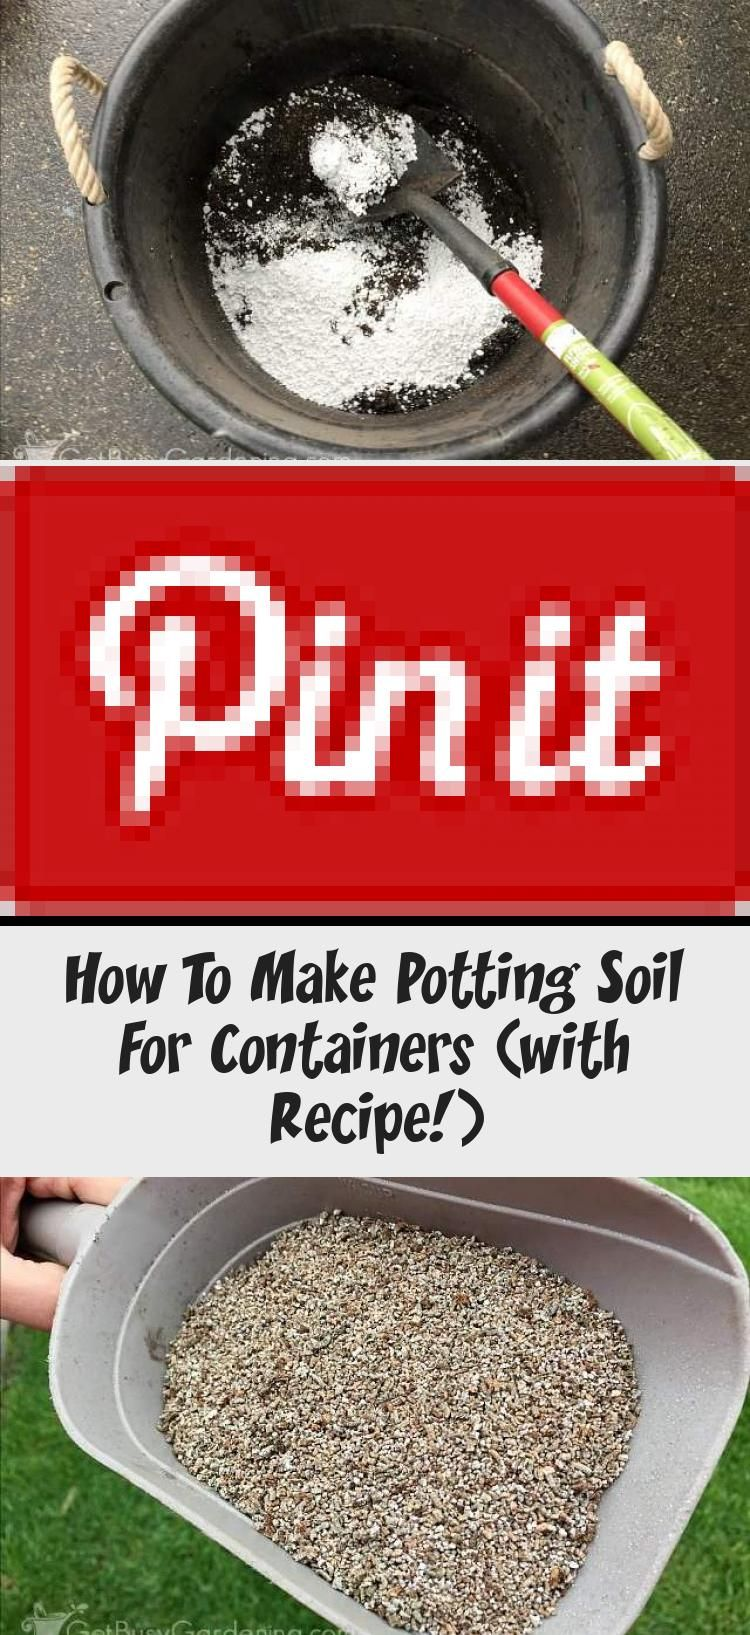 How To Make Potting Soil For Containers (with Recipe